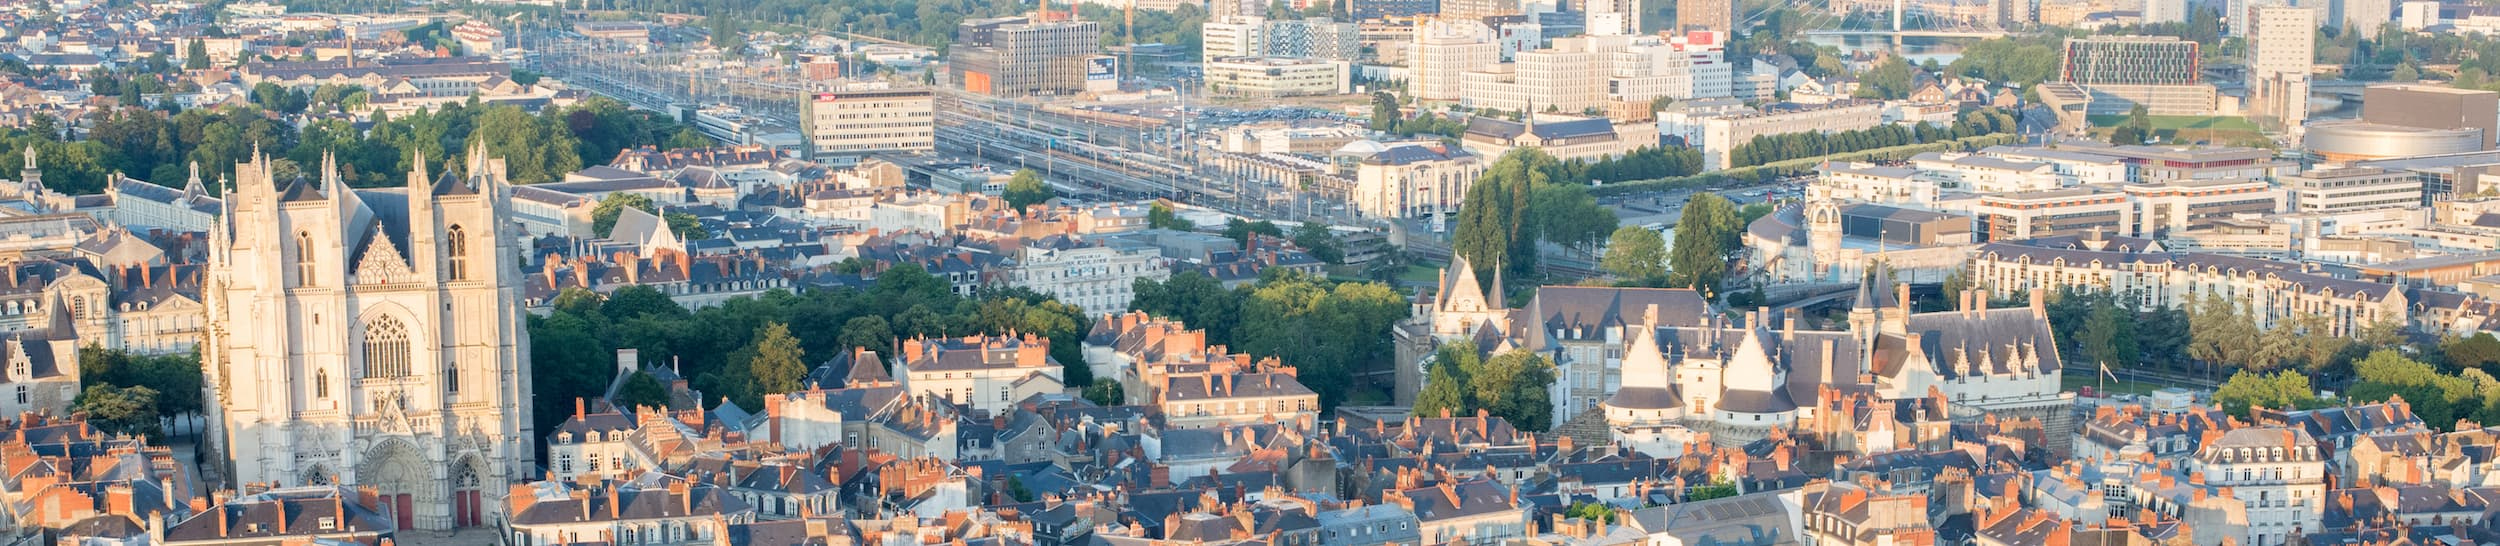 Pictured: skyline of Nantes